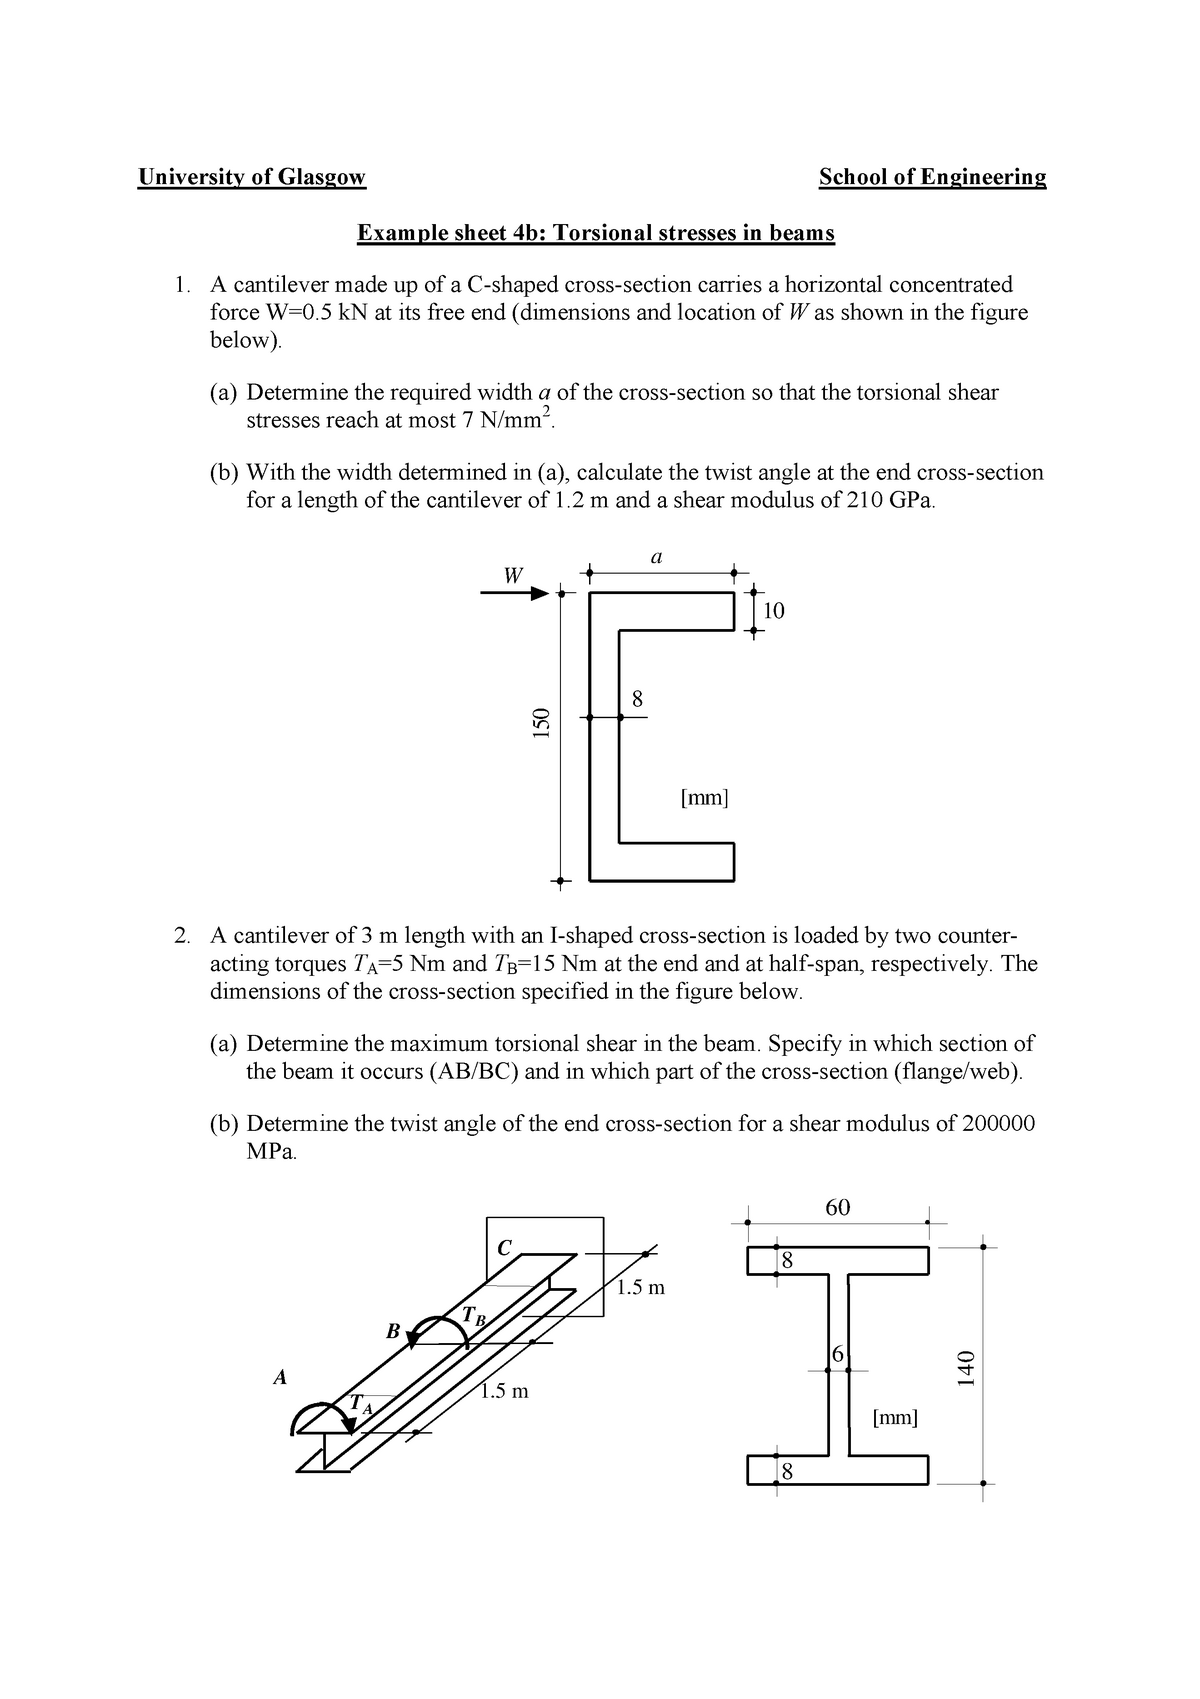 Tutorial 4B - Torsional Stresses in Beams Part 2 - ENG2081